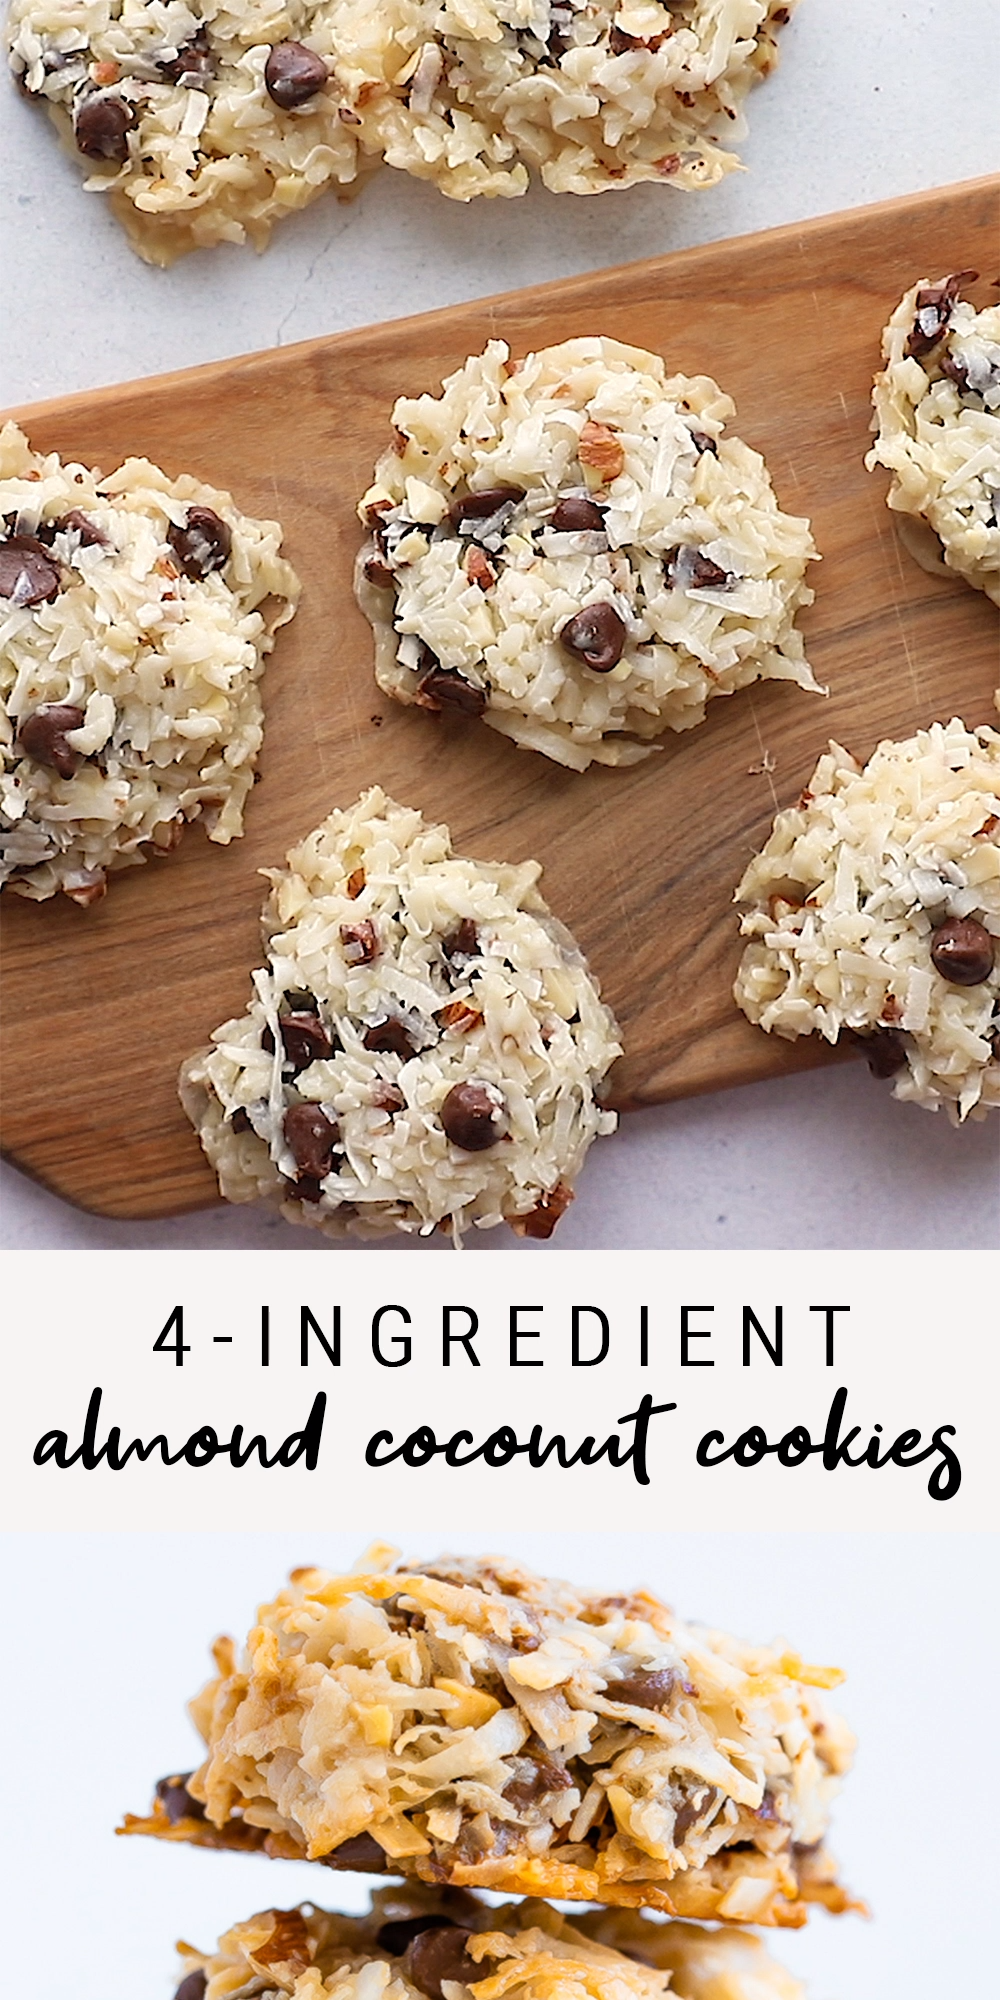 4- Ingredient Almond Coconut Cookies | Vegan + Glu